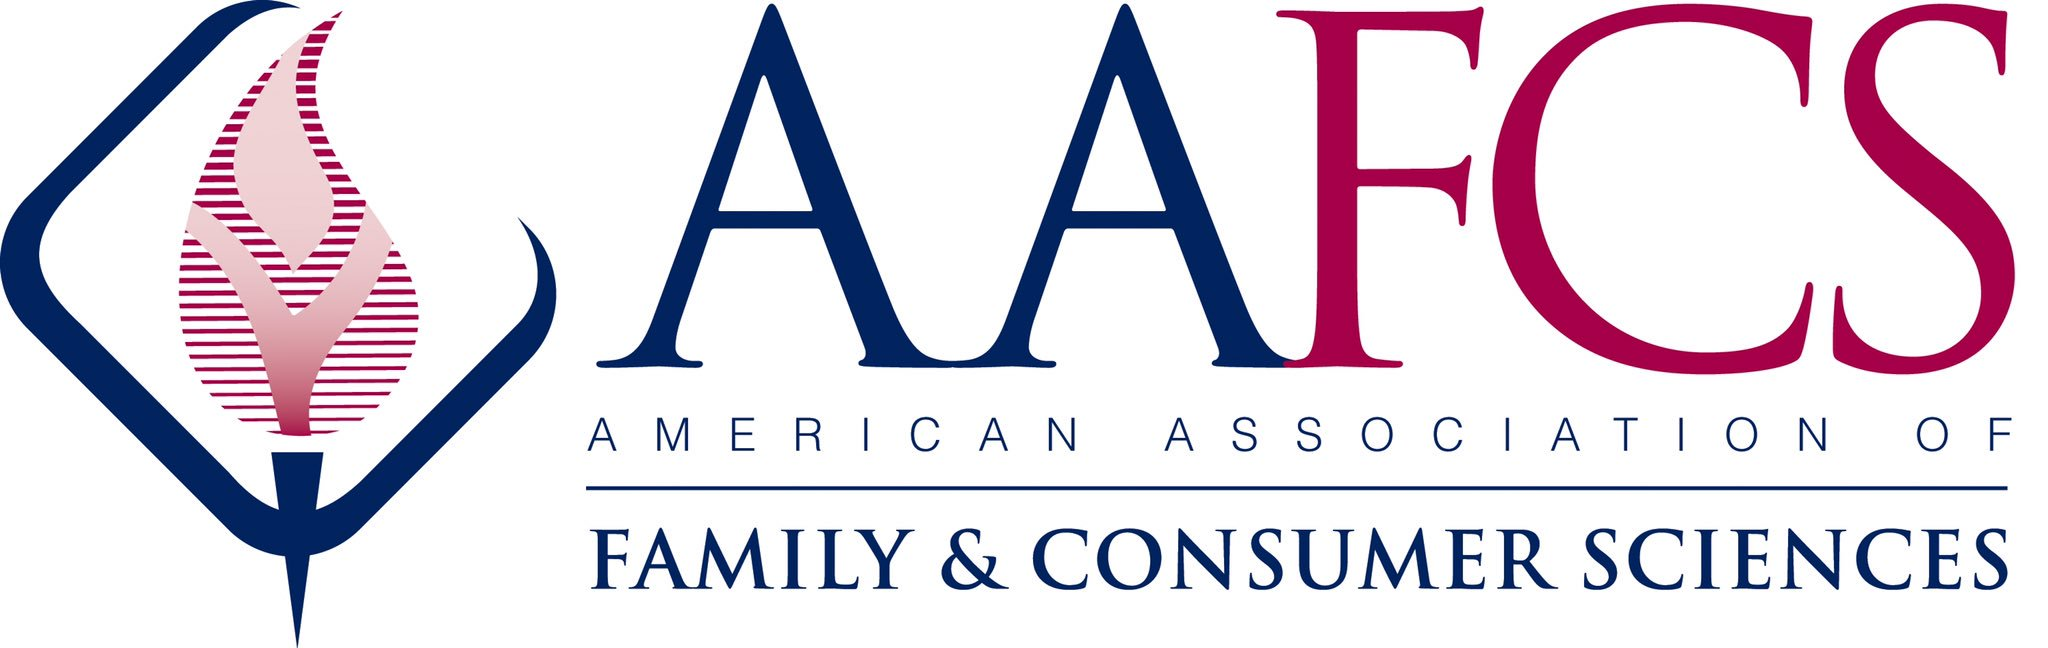 Heading to #AAFCSac in Dallas,TX!  I will be presenting at my 11th consecutive national @aafcs conference. @UWSPcps #Leadership #SayYestoFCS https://t.co/gSlIiIbZcX